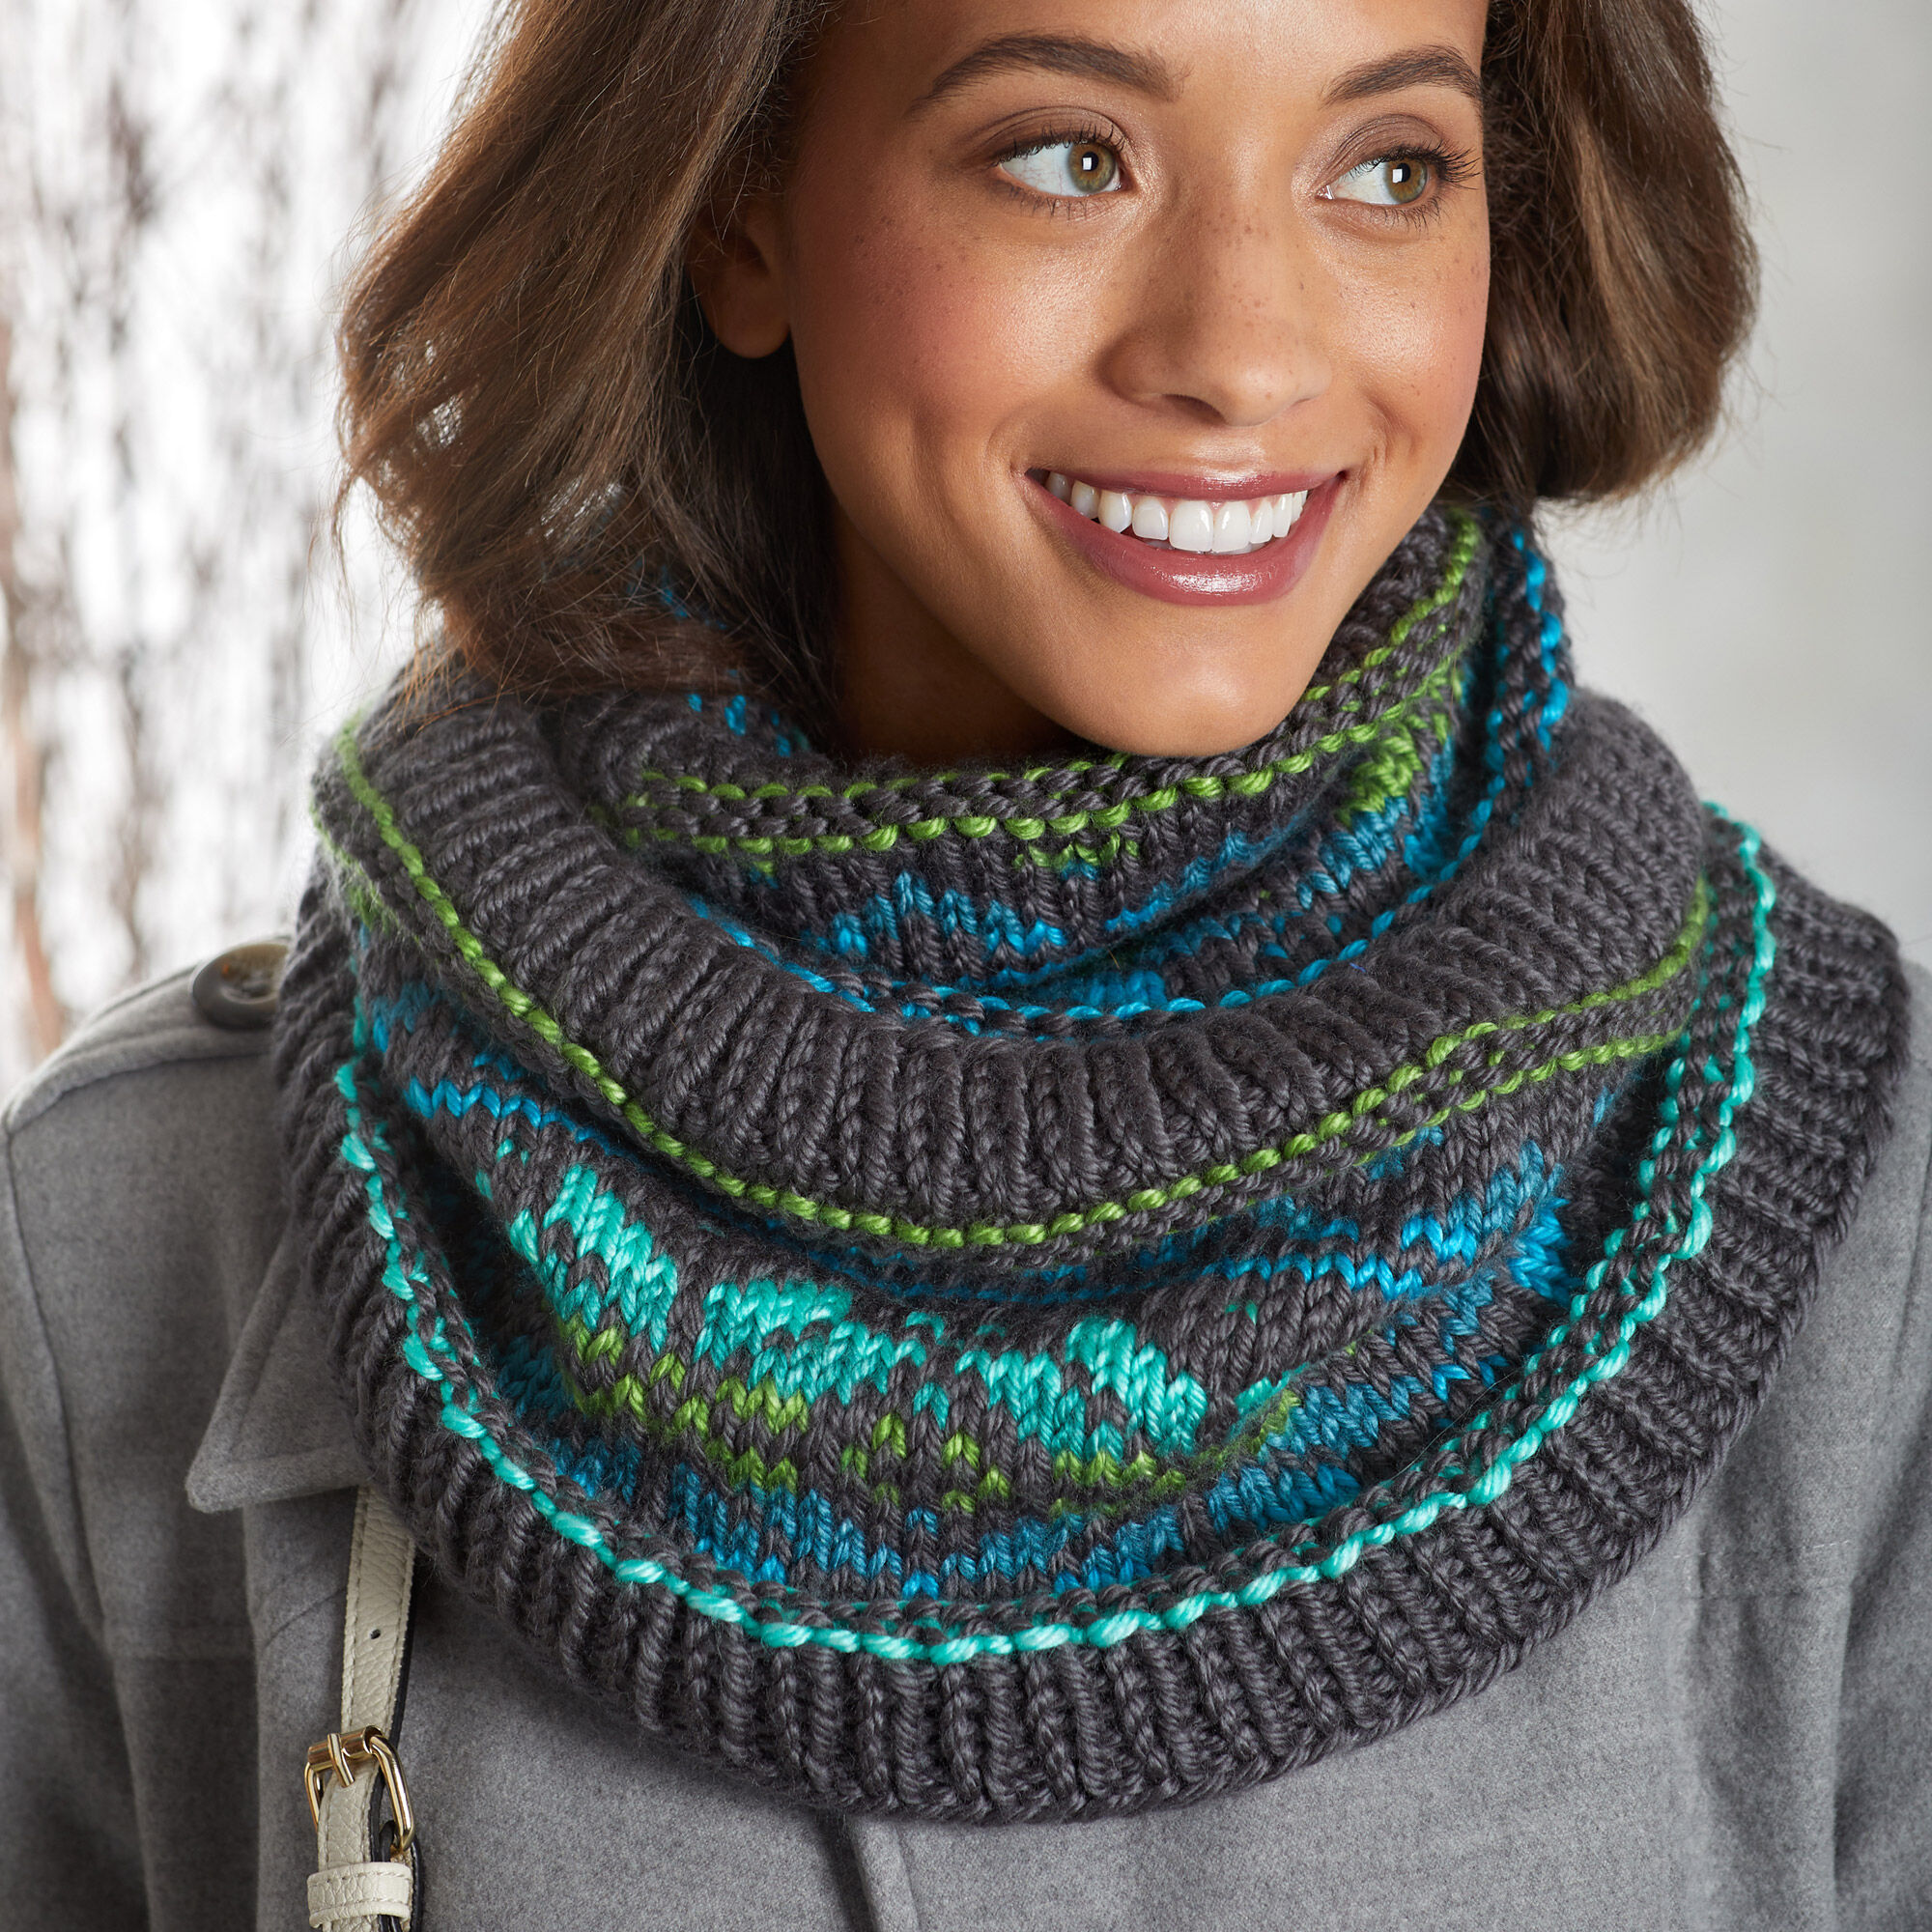 Beginner Fair Isle cowl knitting pattern with self-striping yarn